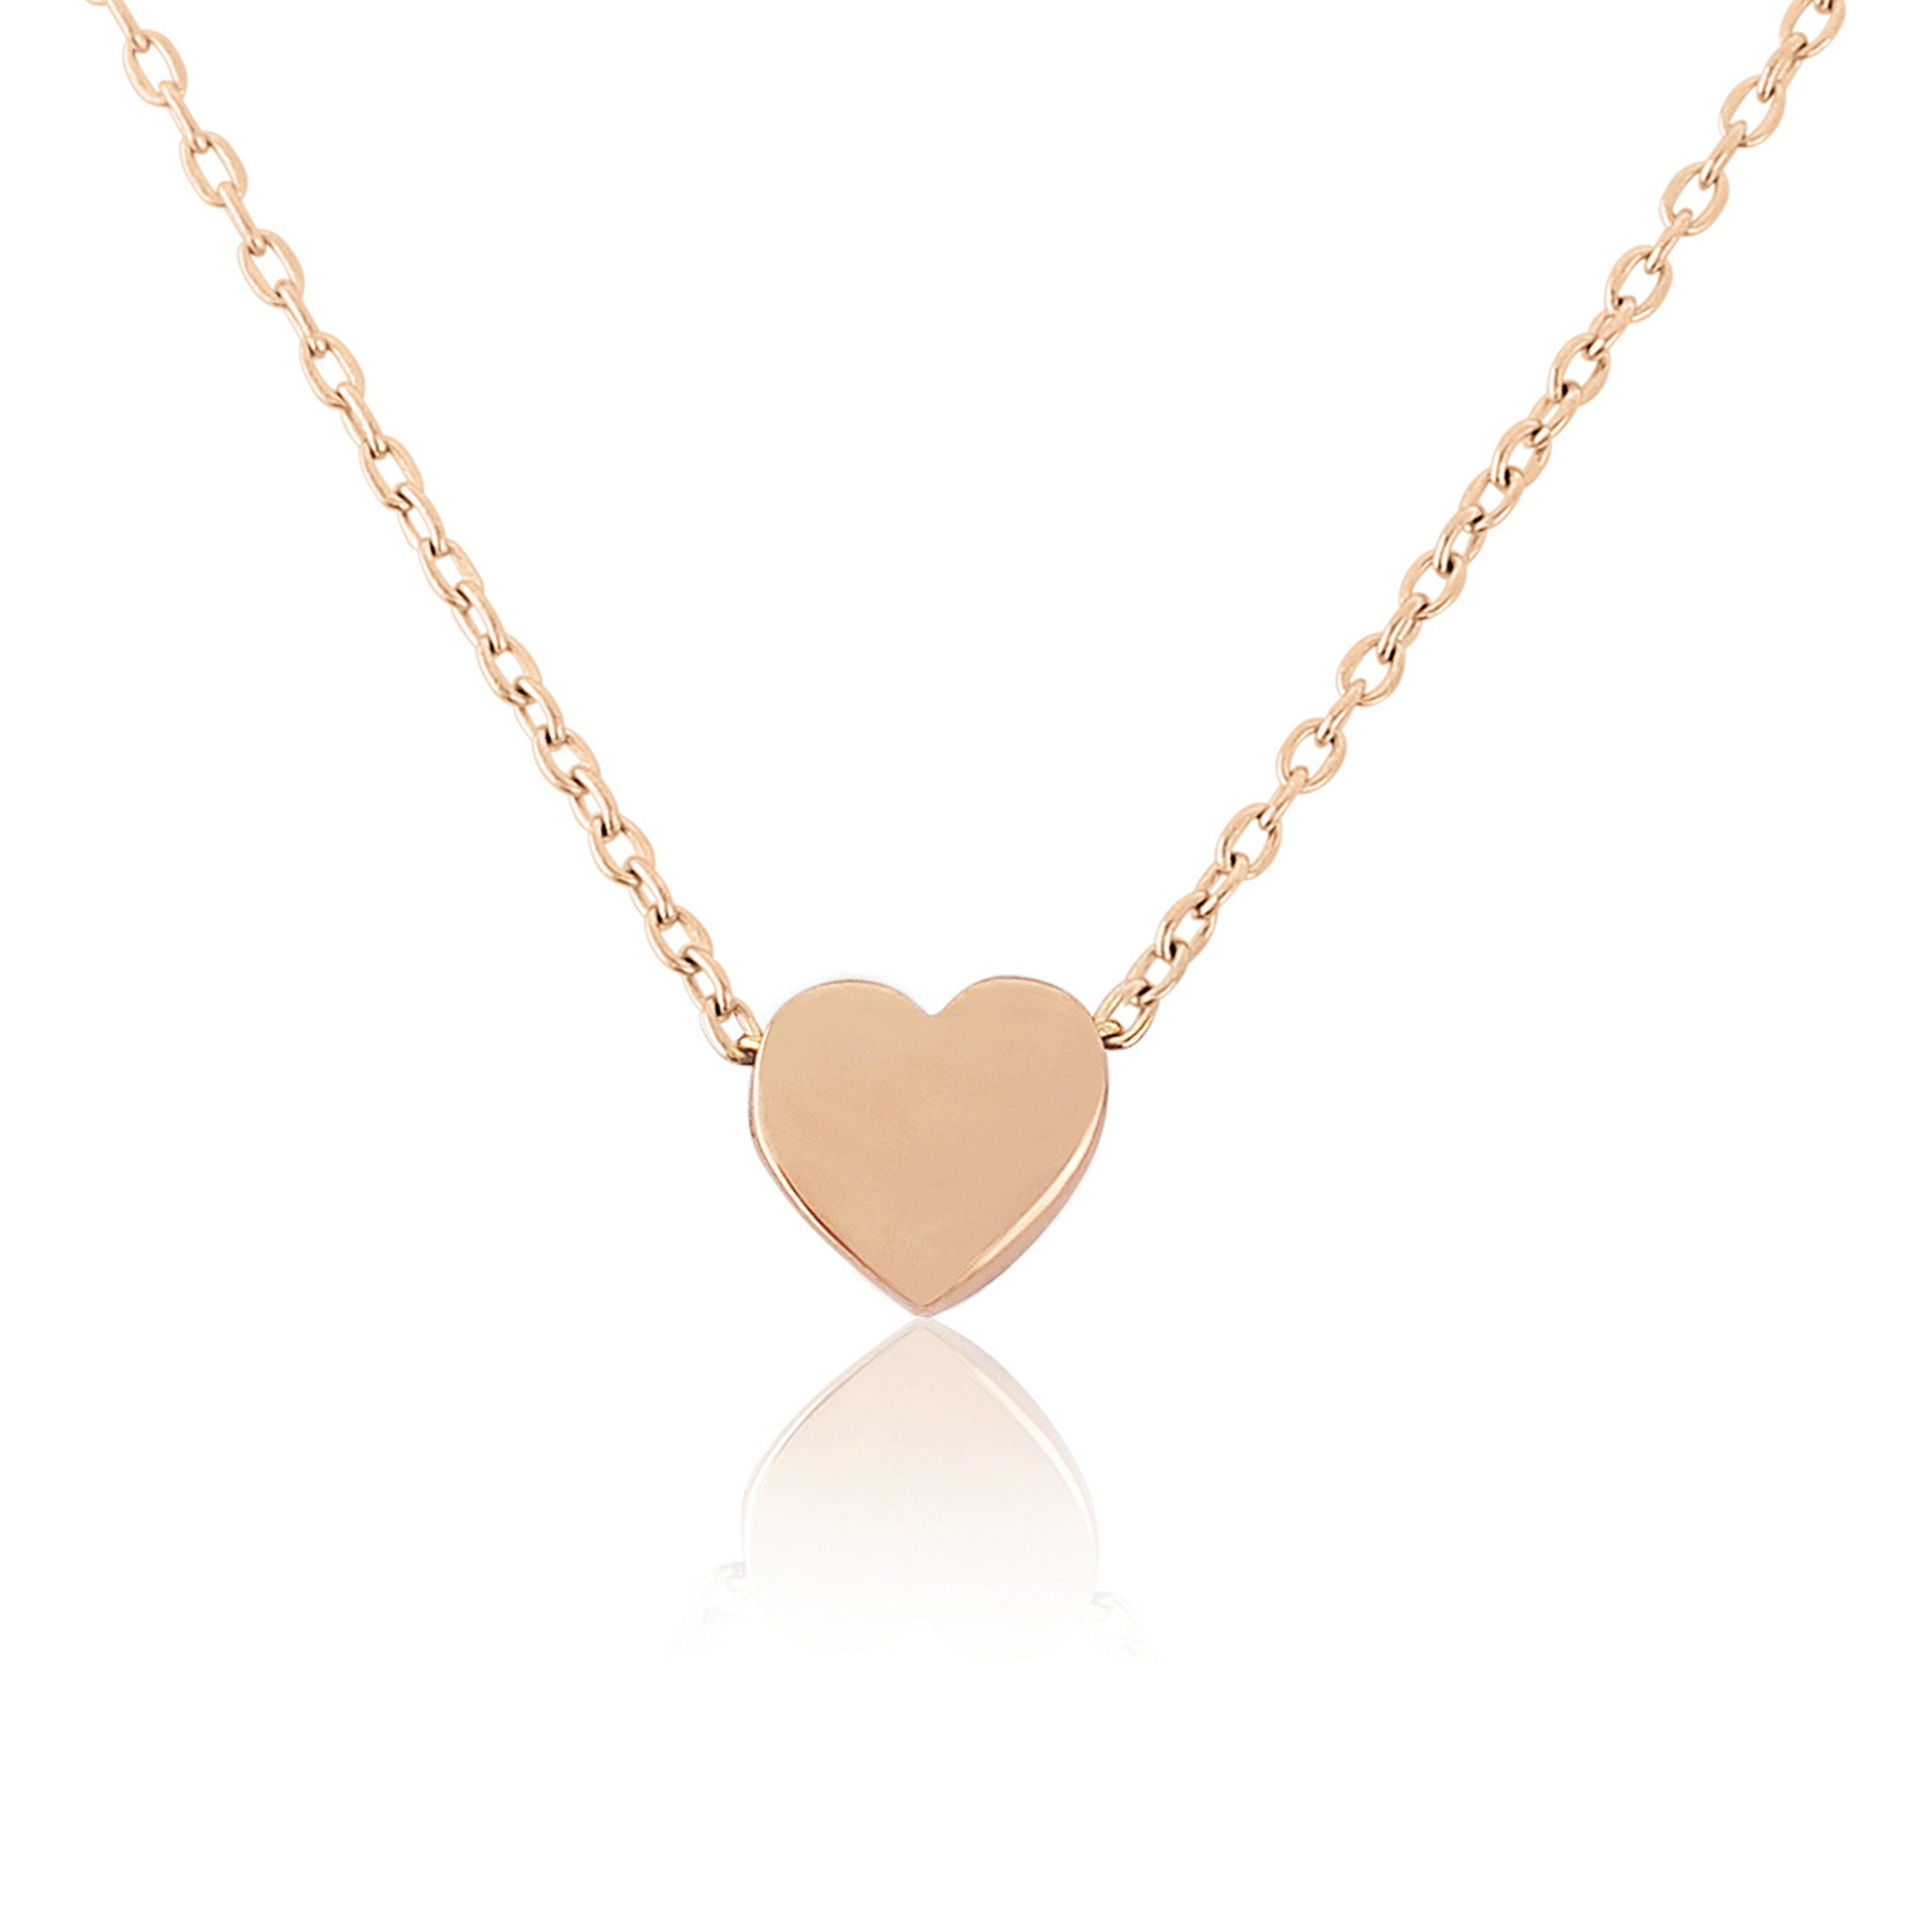 09248a6f1adfde 9ct rose gold, also available in white or yellow gold. Only £107 decisions